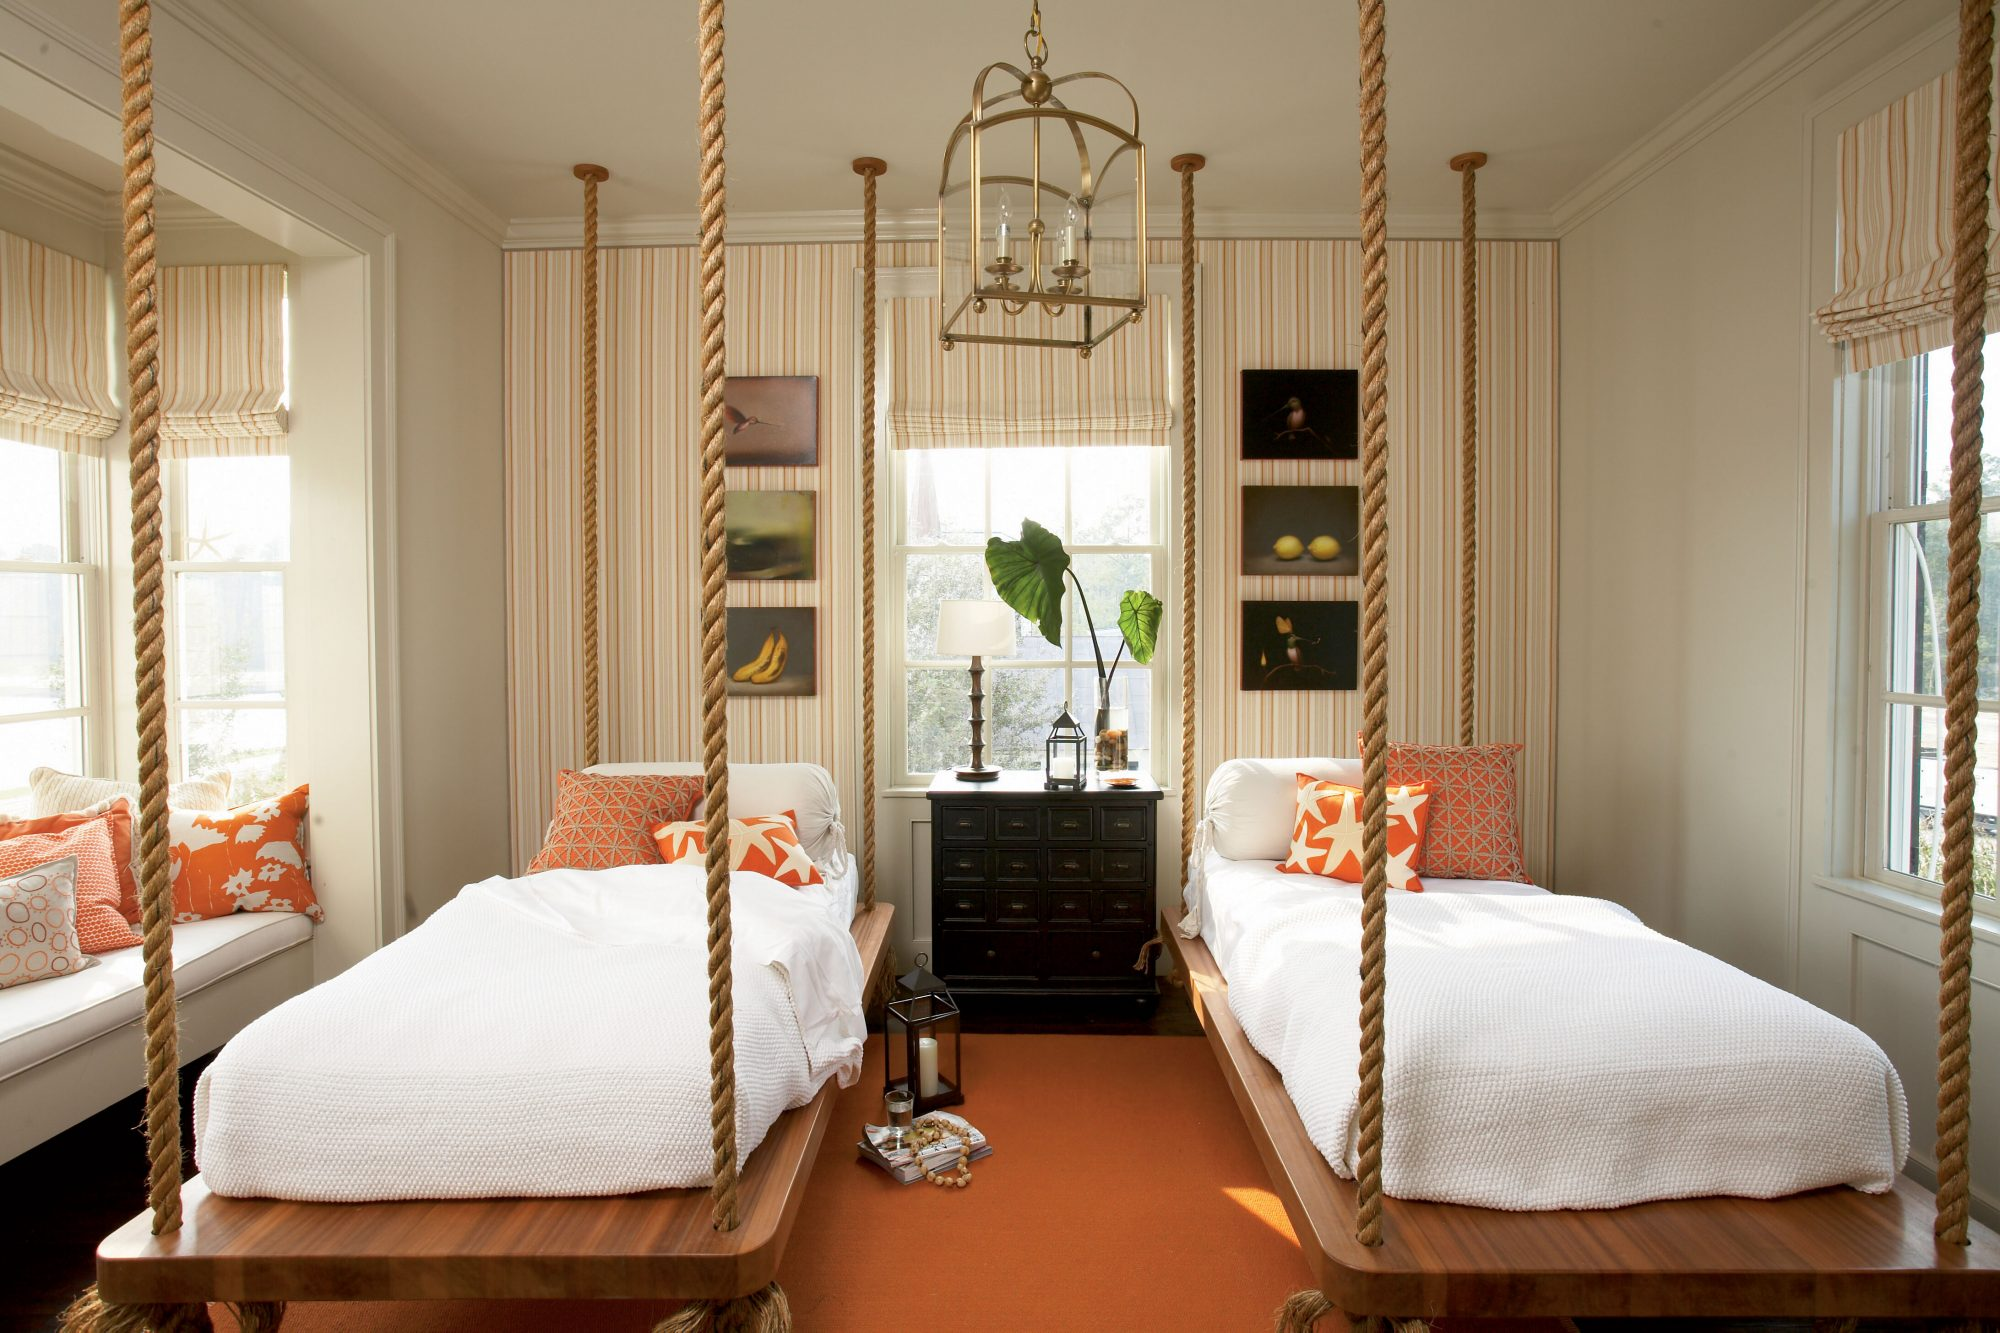 twin beds suspend in space with ropes in this nautical beach bedroom